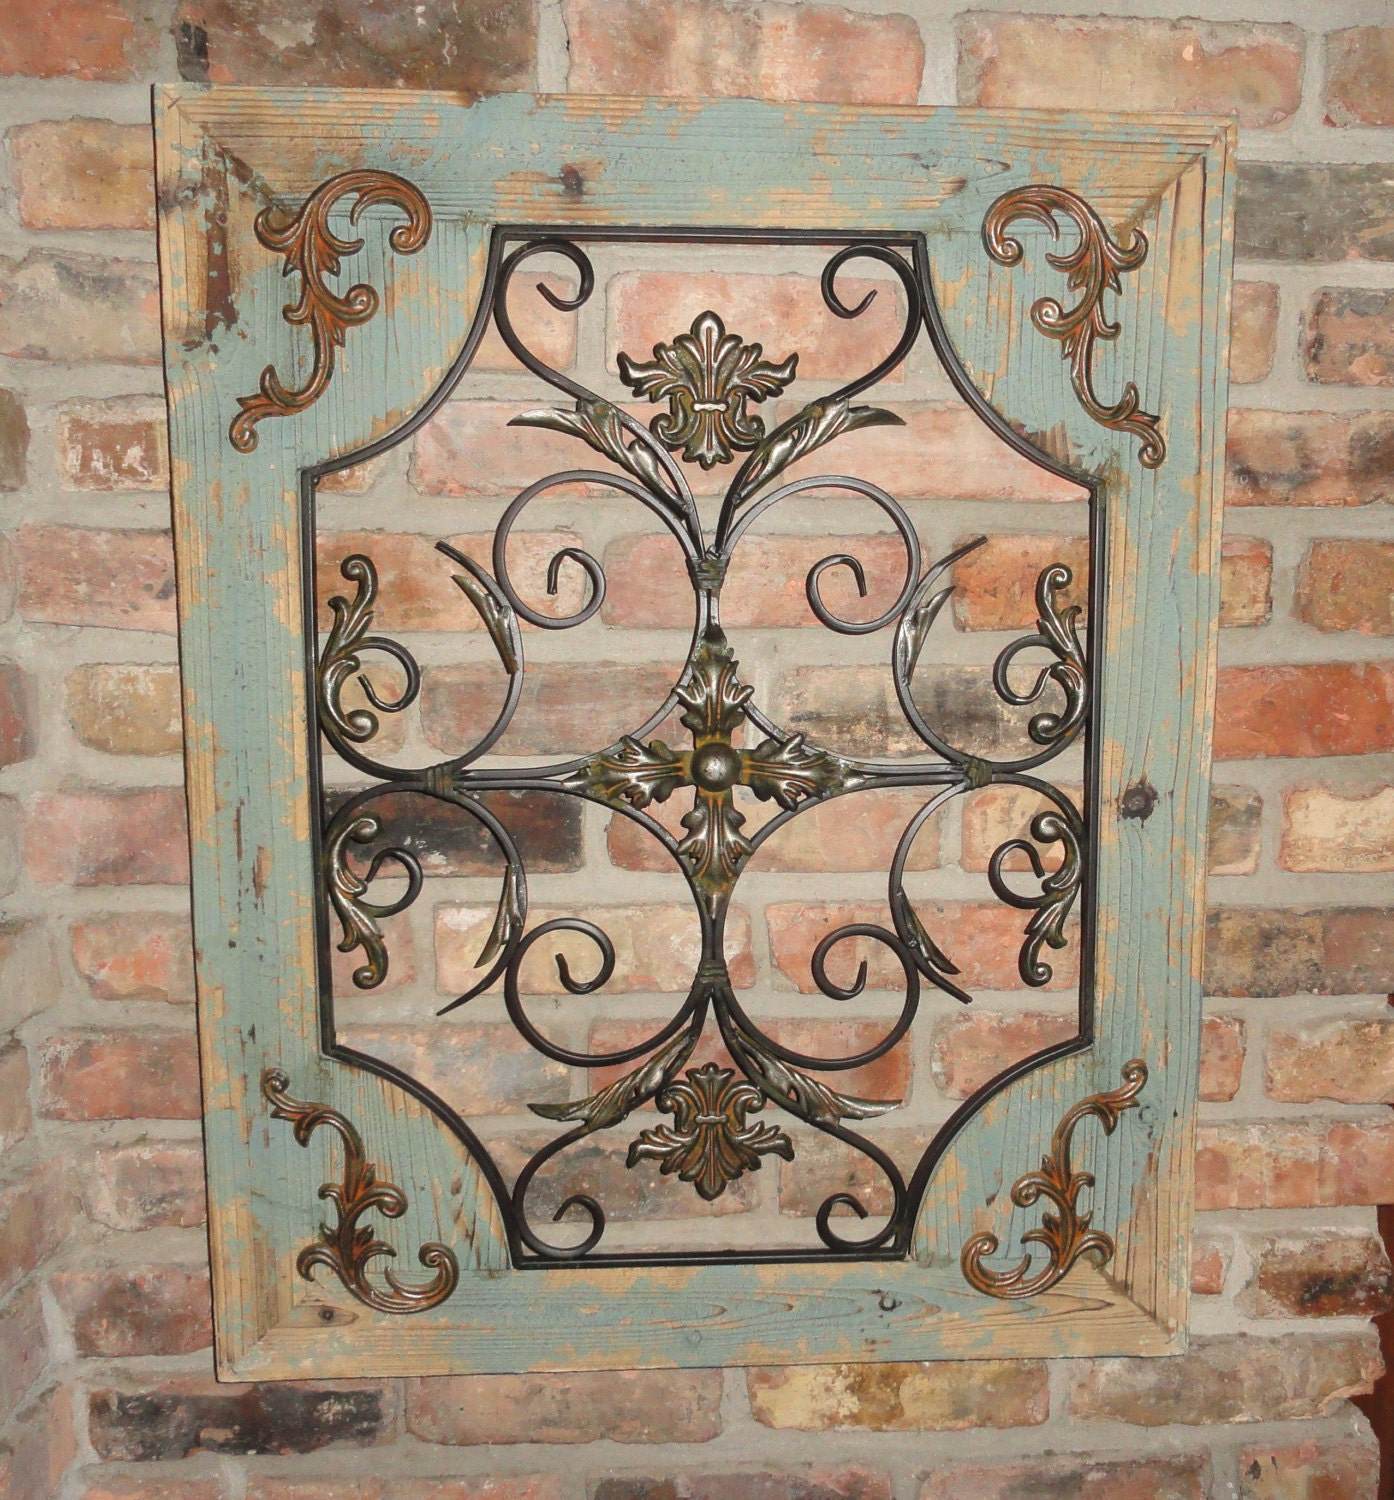 Fleur De Lis Metal Wall Decor rustic turquoise wood & metal wall decor cottage chic shabby